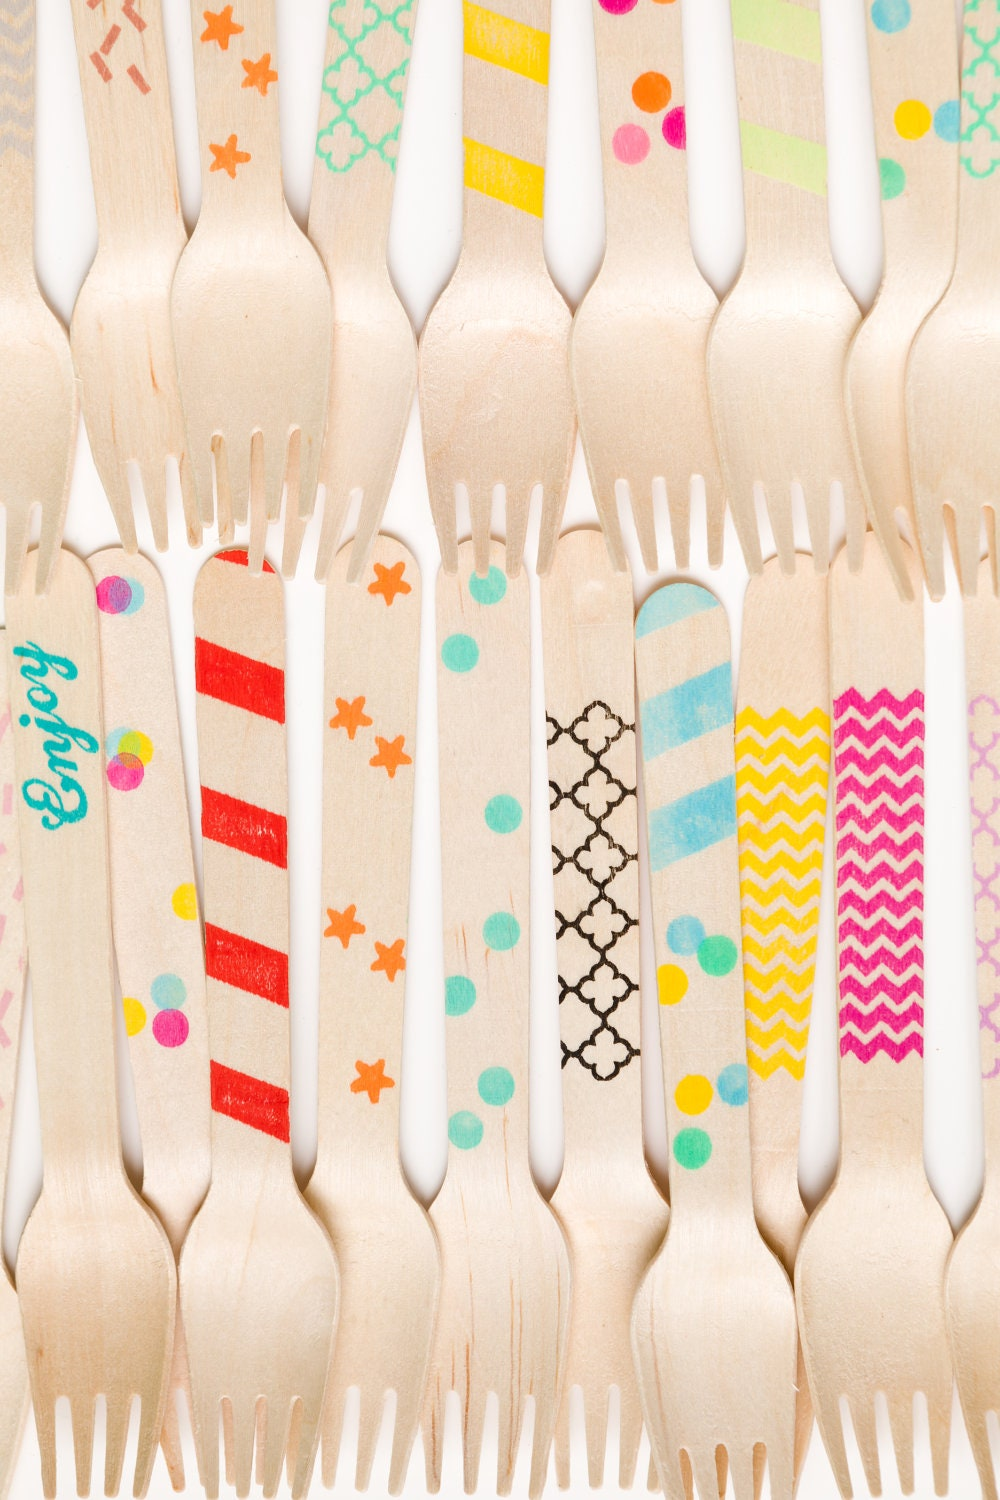 Wooden Utensils Variety Pack by Sucre Shop